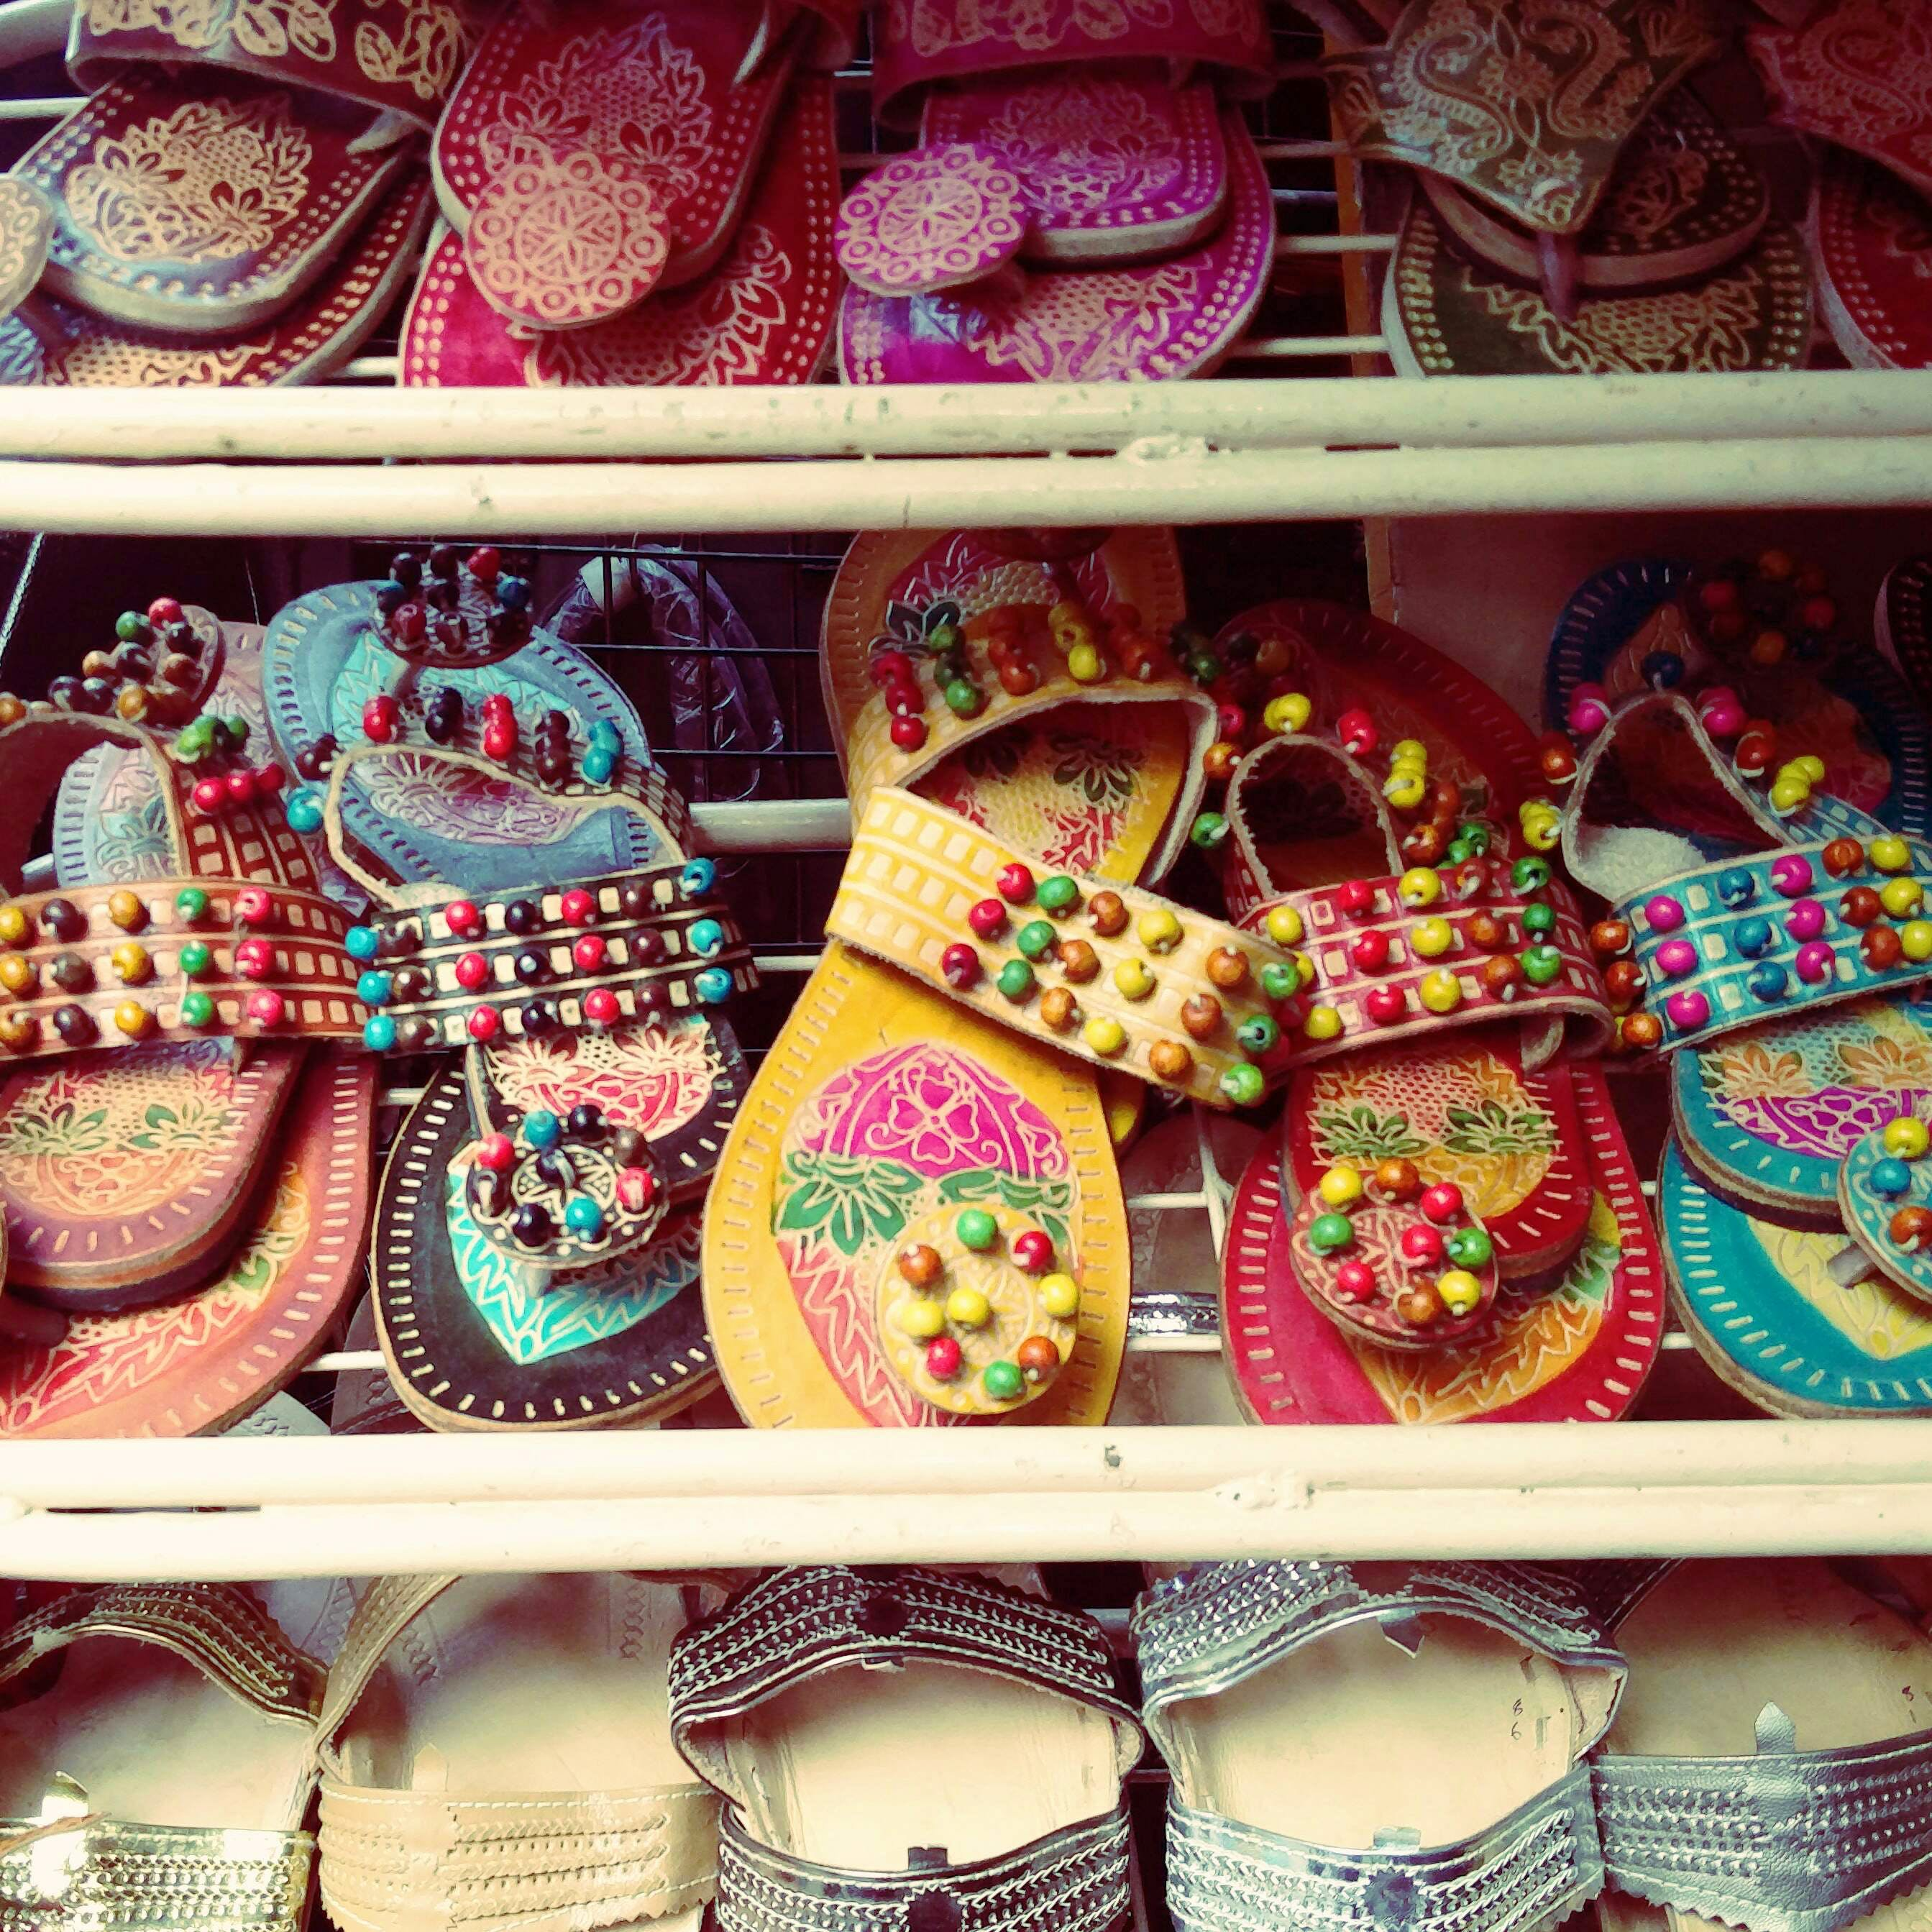 Pink,Footwear,Tradition,Shoe,Textile,Fashion accessory,Souvenir